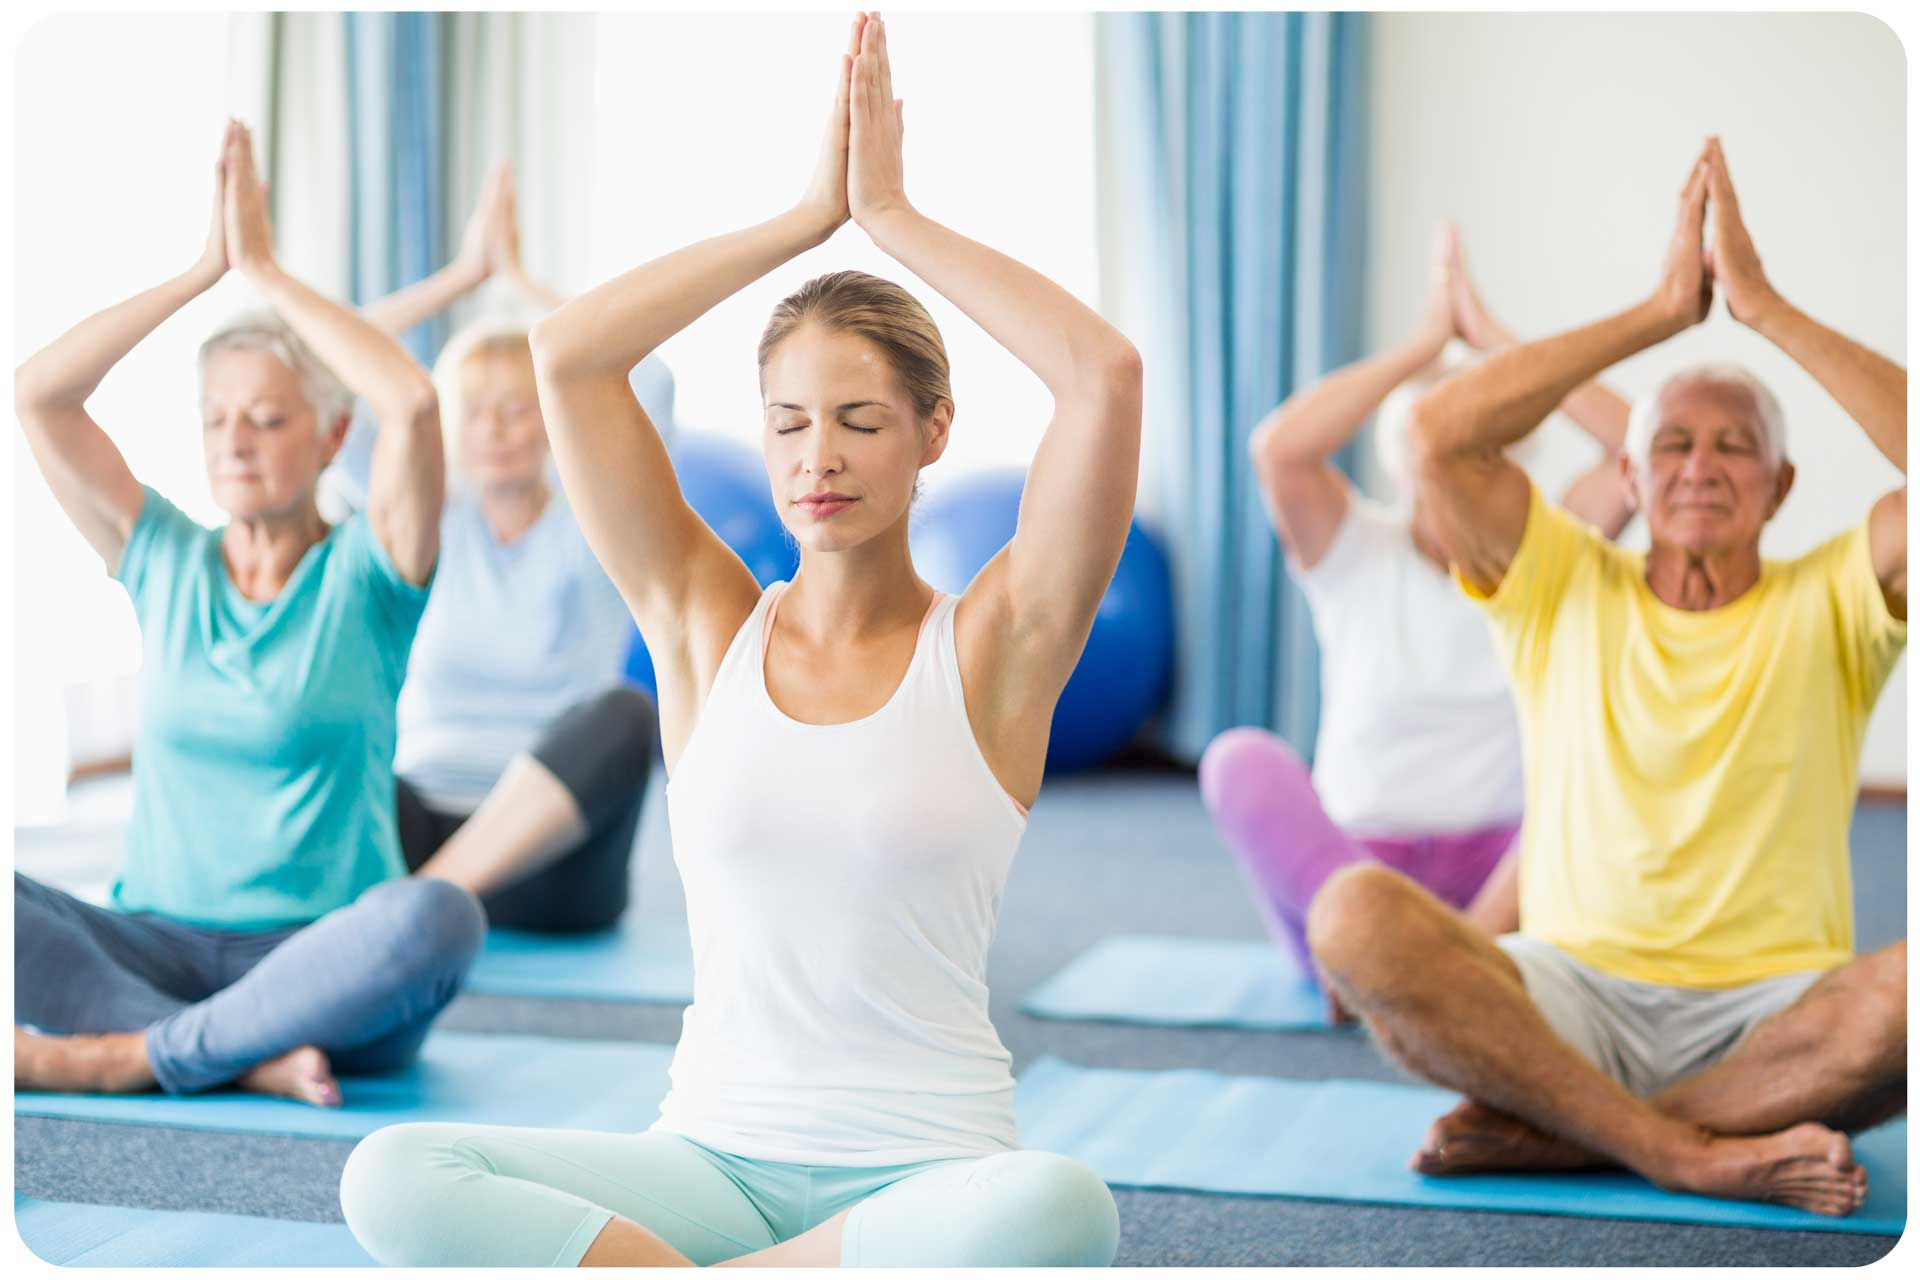 YOUga Focusing On Your Mind And Body In A Group Yoga Session